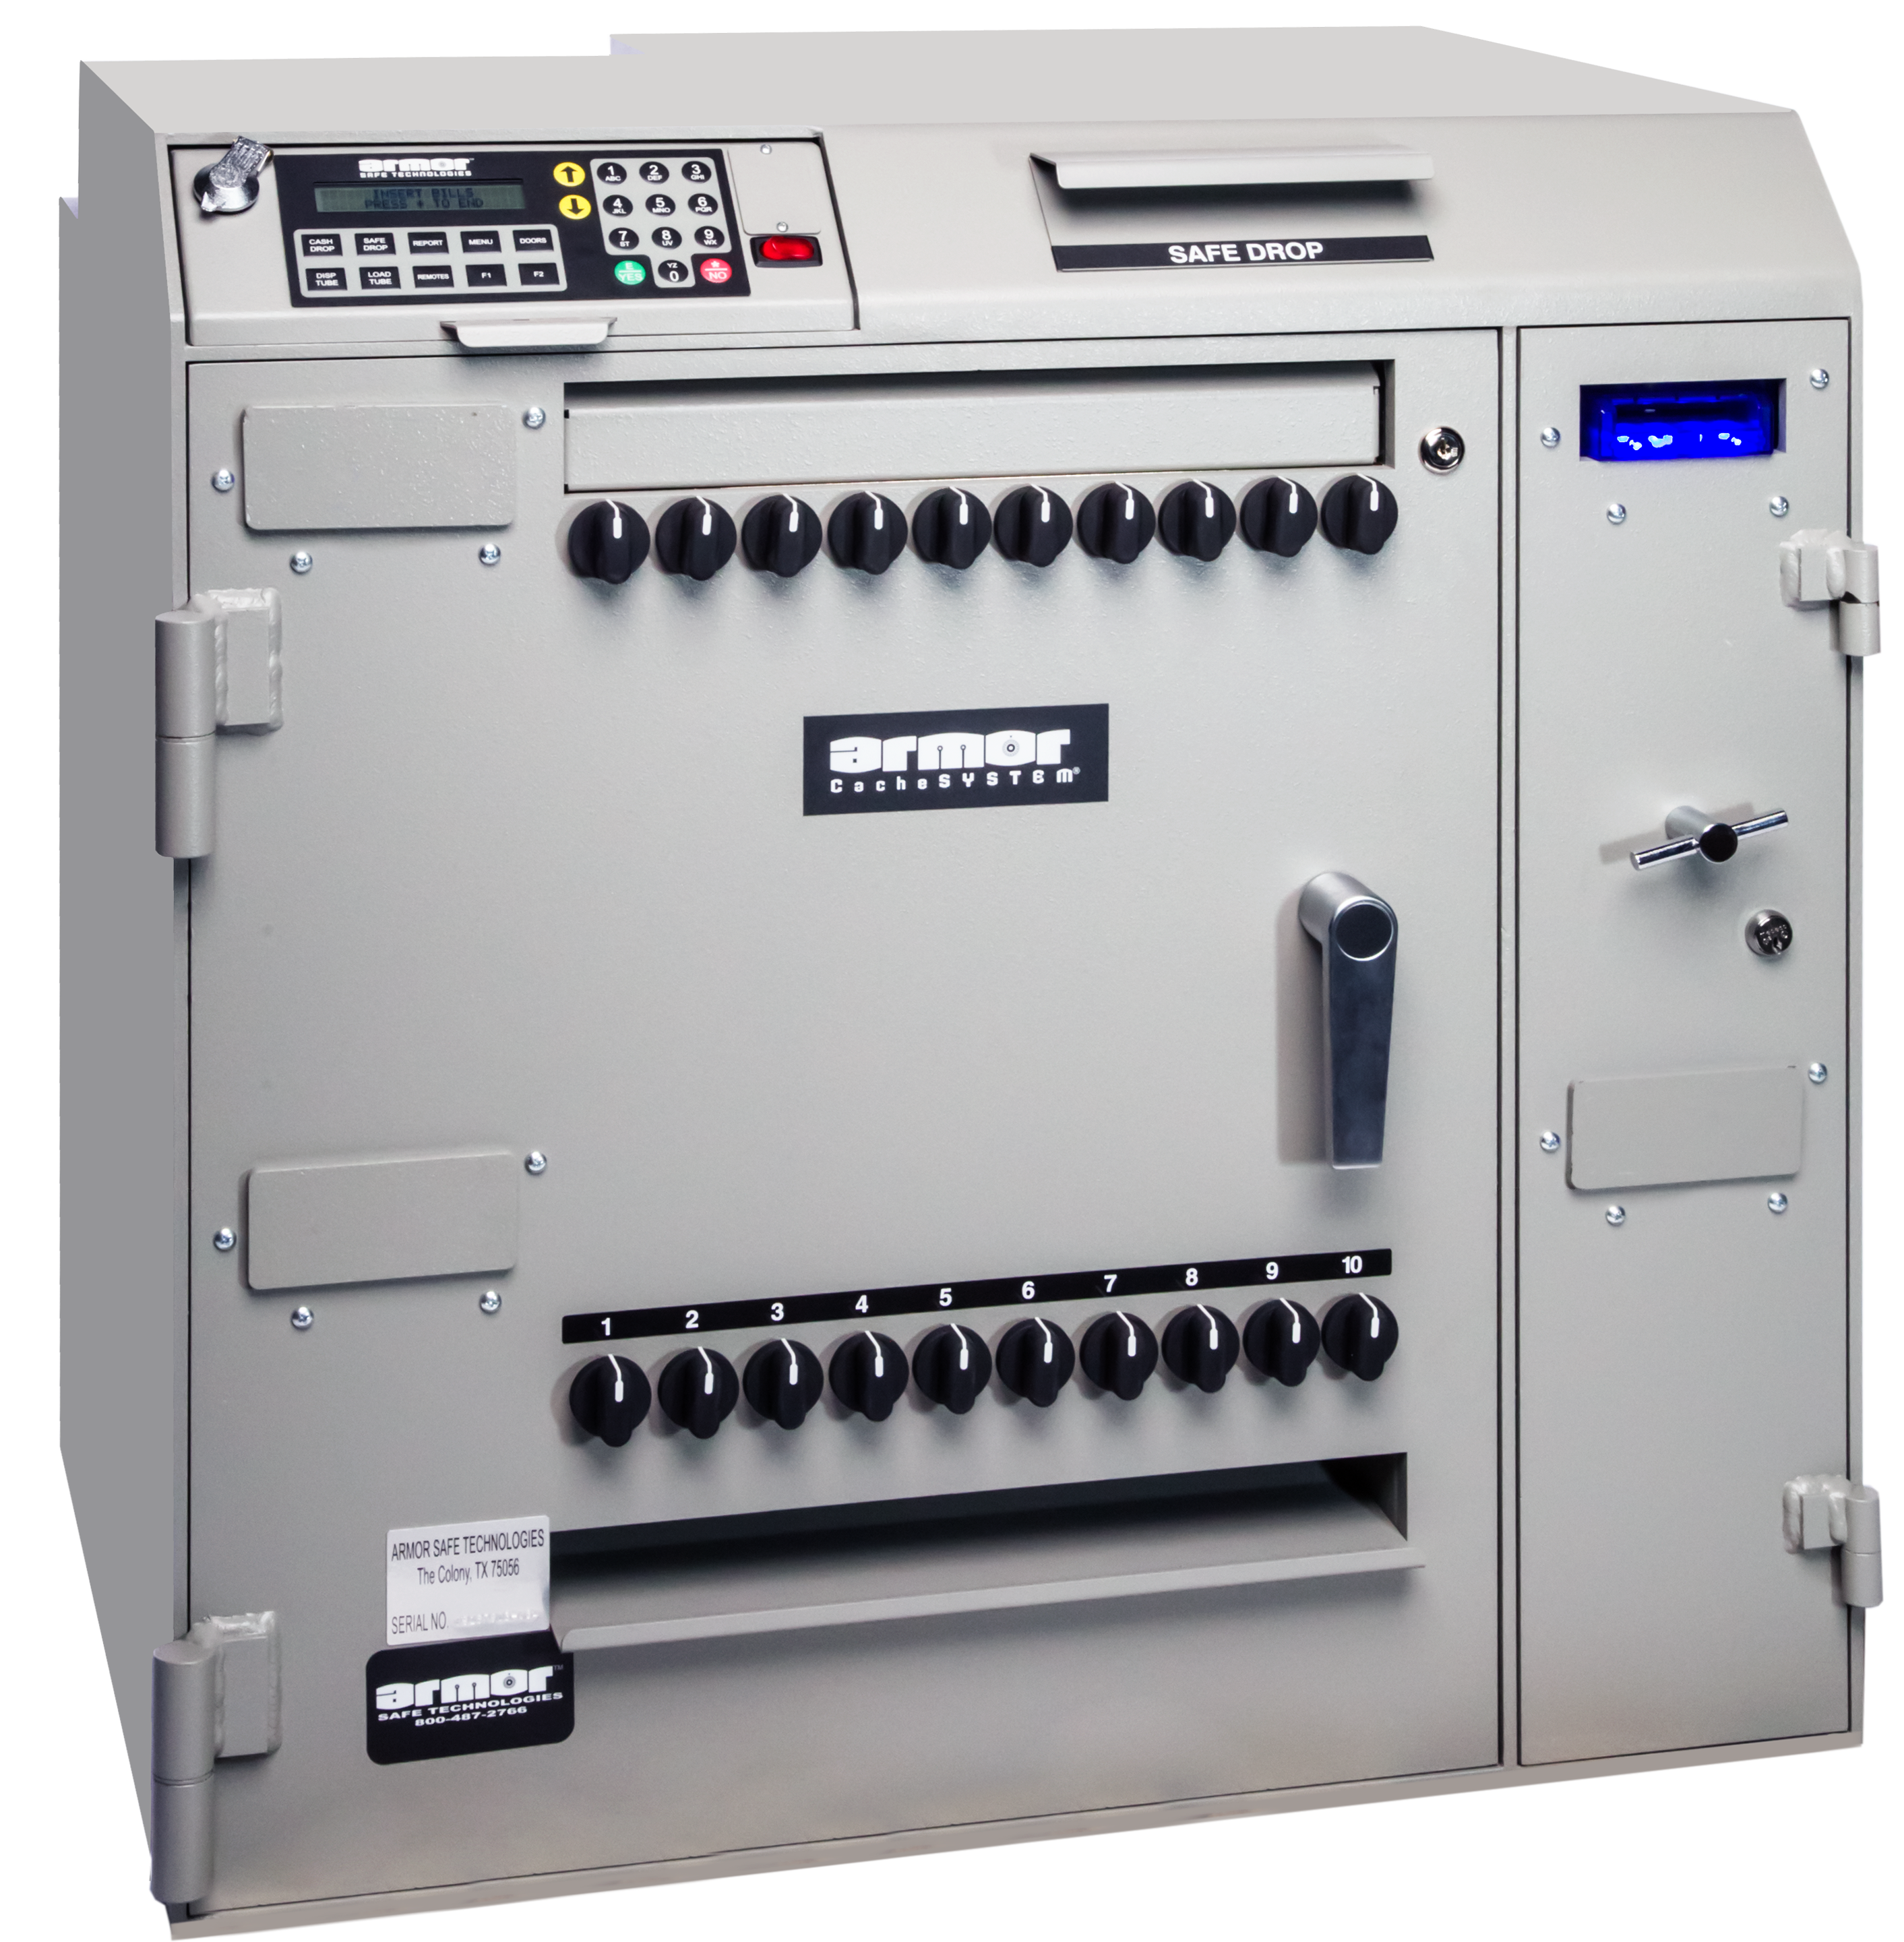 Armor 7900 Series Smart Safe